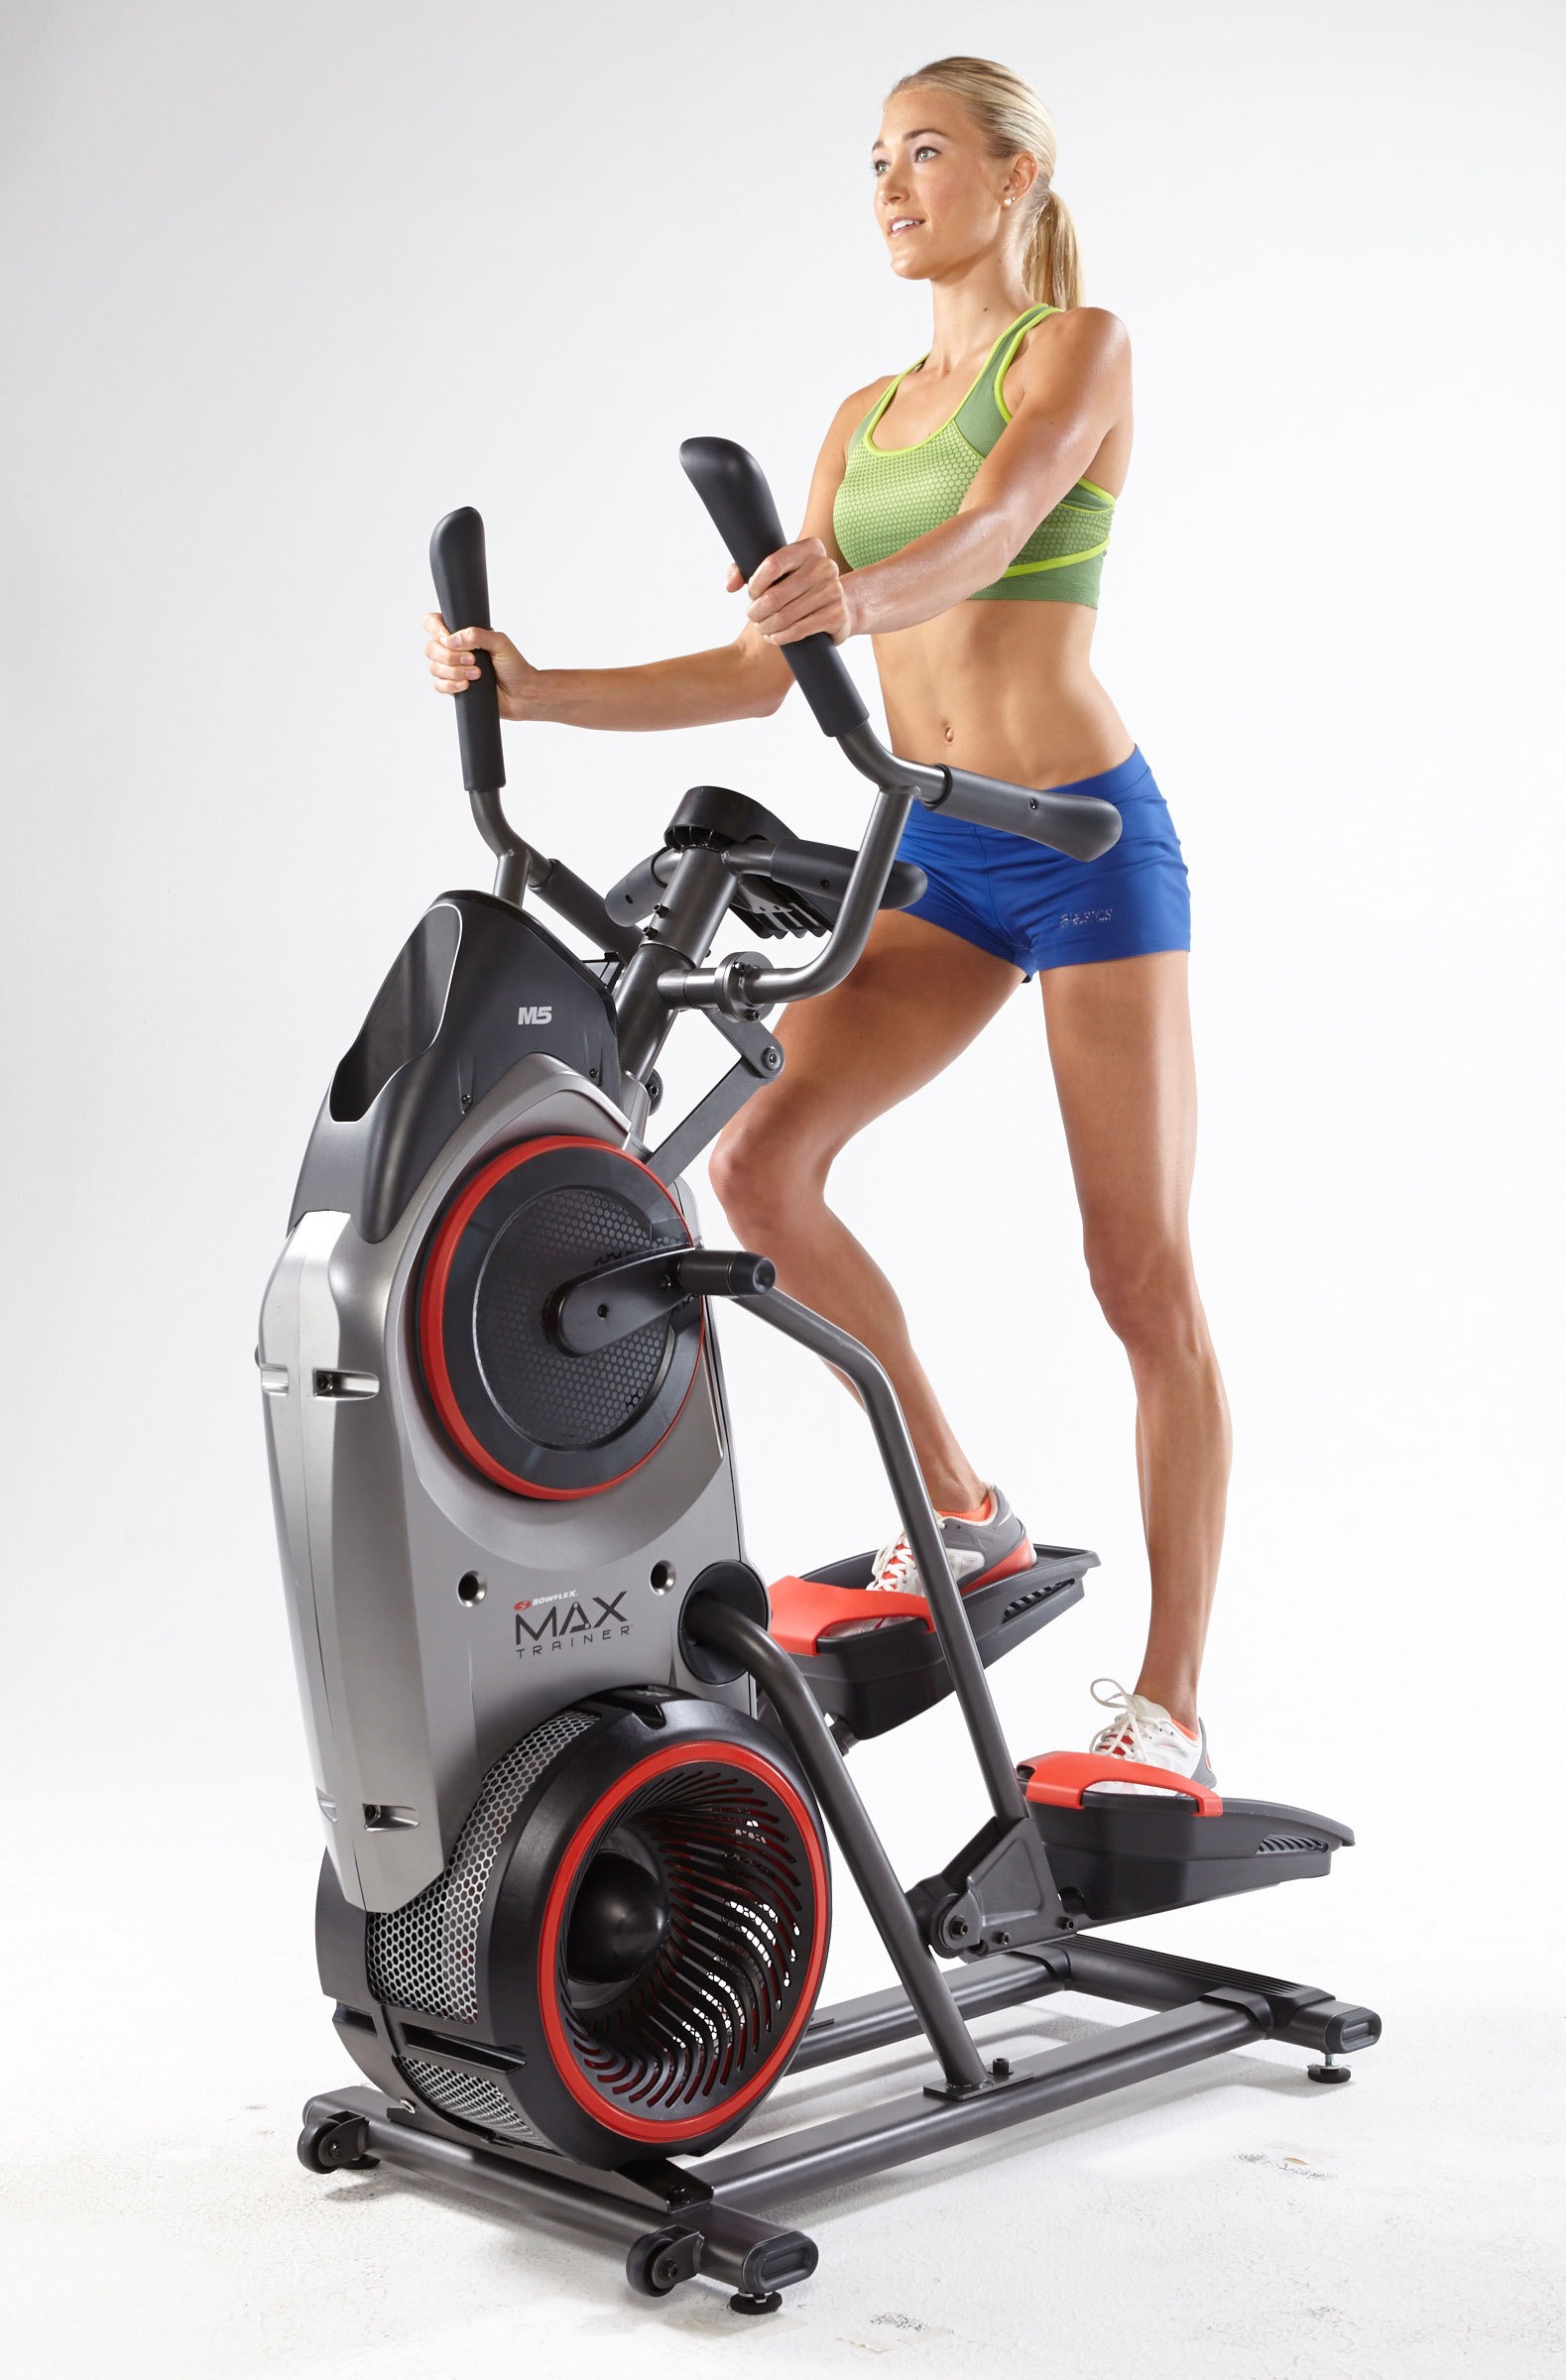 The Bowflex MAX Trainer™ combines the motions of an elliptical and stair stepper to help users burn up to 2.5 times the calories. (Photo: Business Wire)